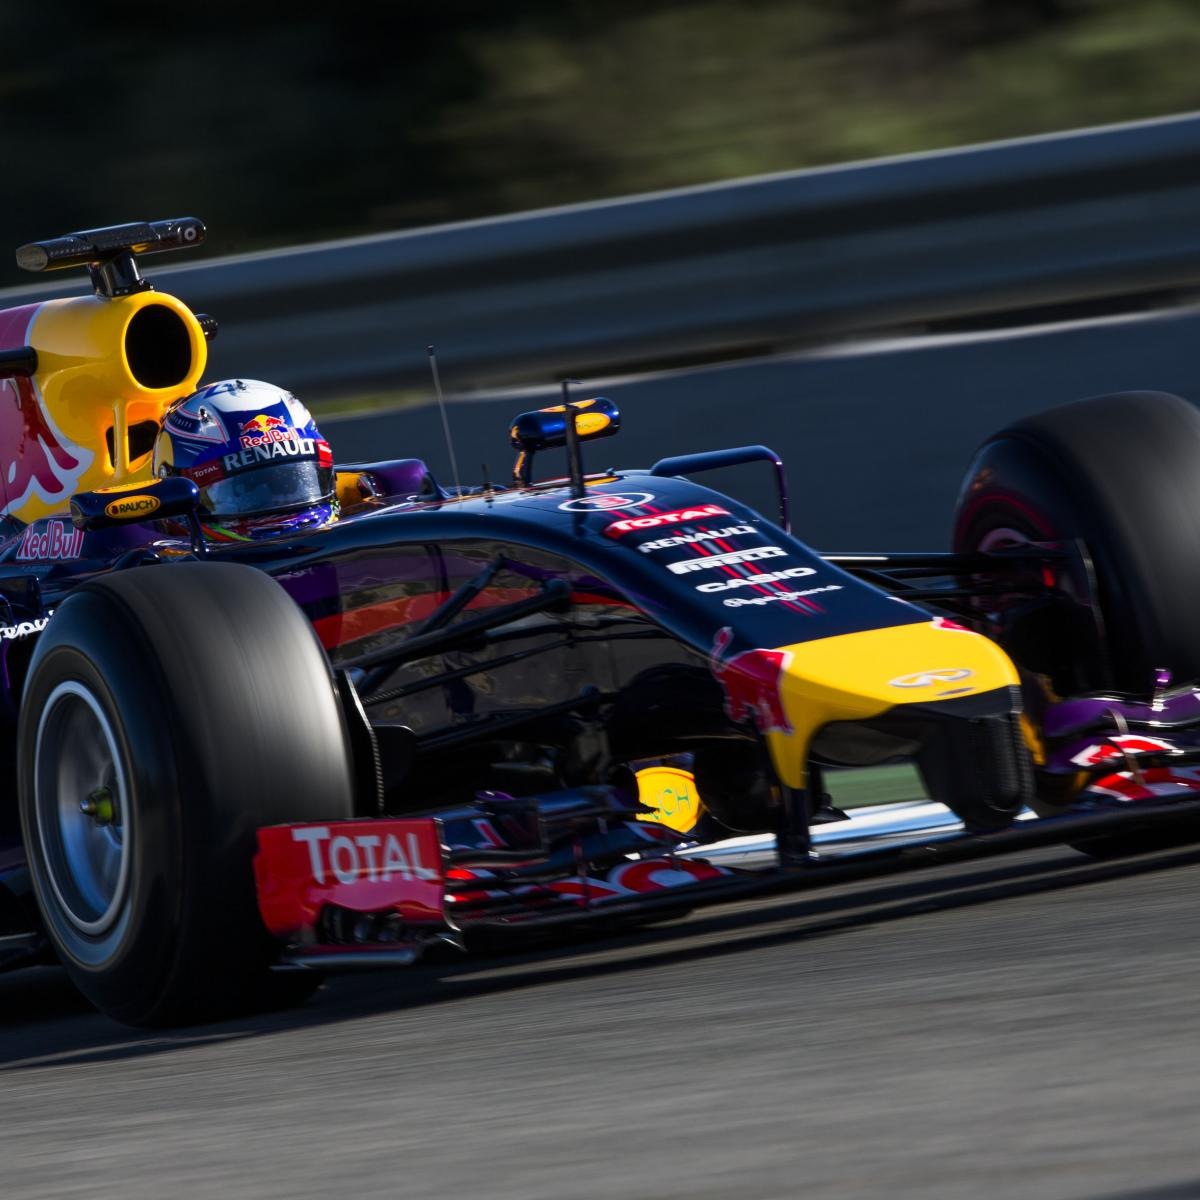 Renault Formula 1: Red Bull And Other Renault Teams Continue To Struggle At